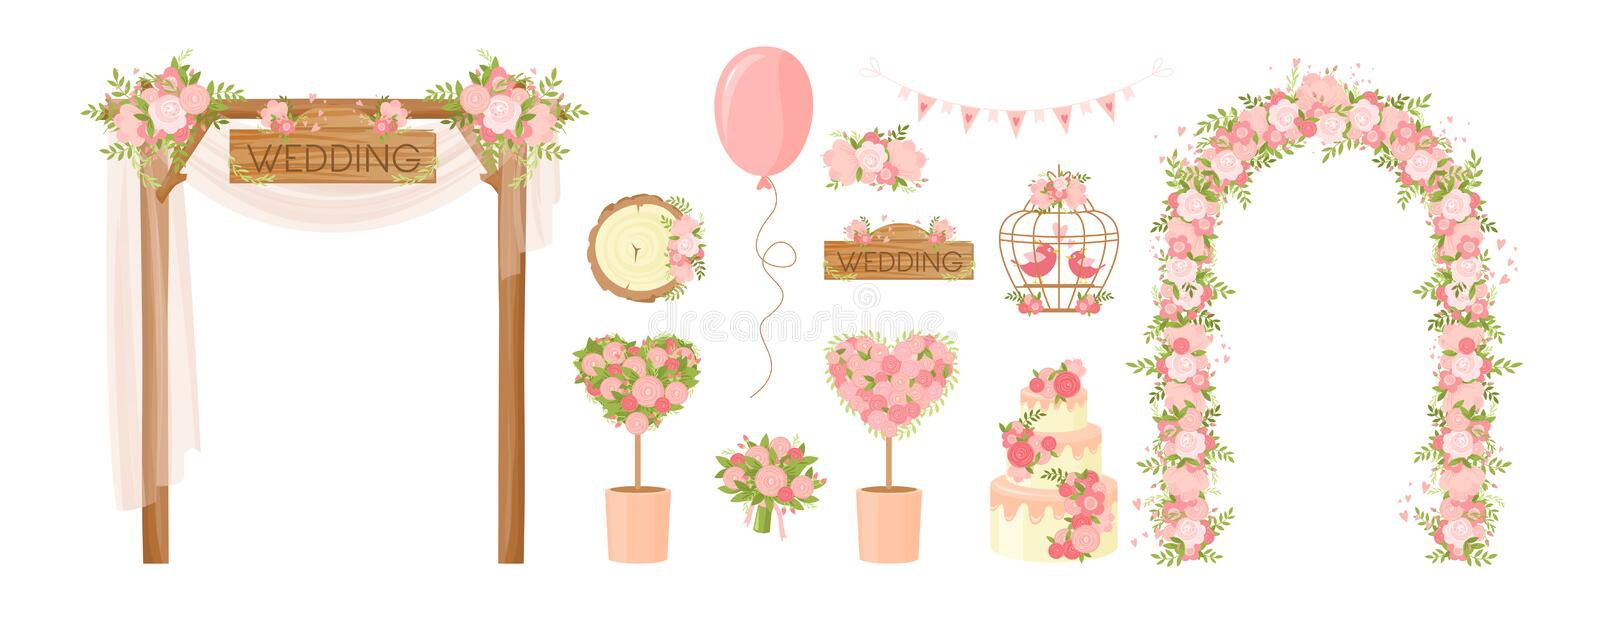 Wedding party flower decoration items set in flat cartoon style stock photography